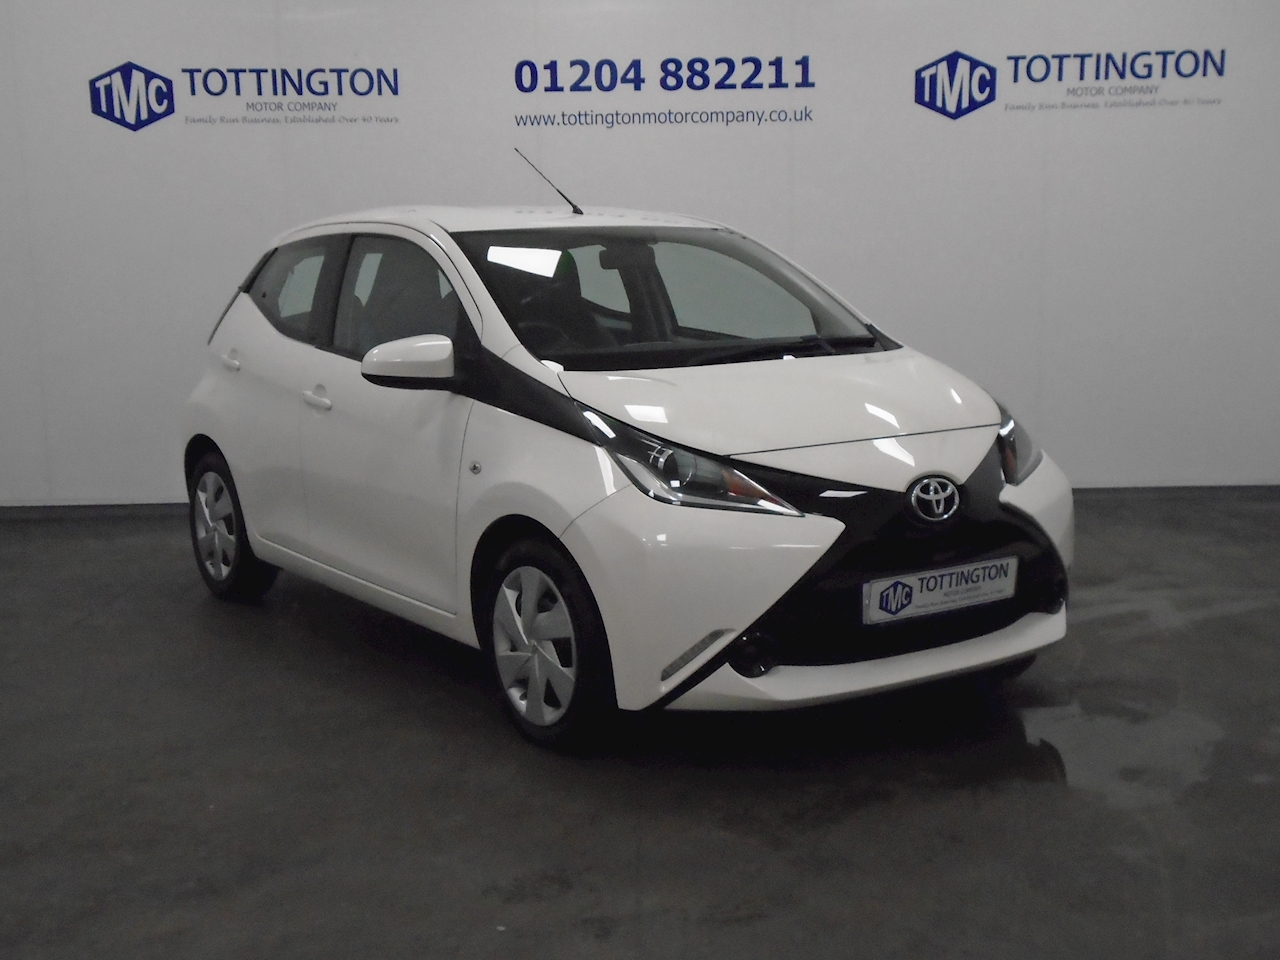 Toyota AYGO x-play Hatchback 1.0 Manual Petrol